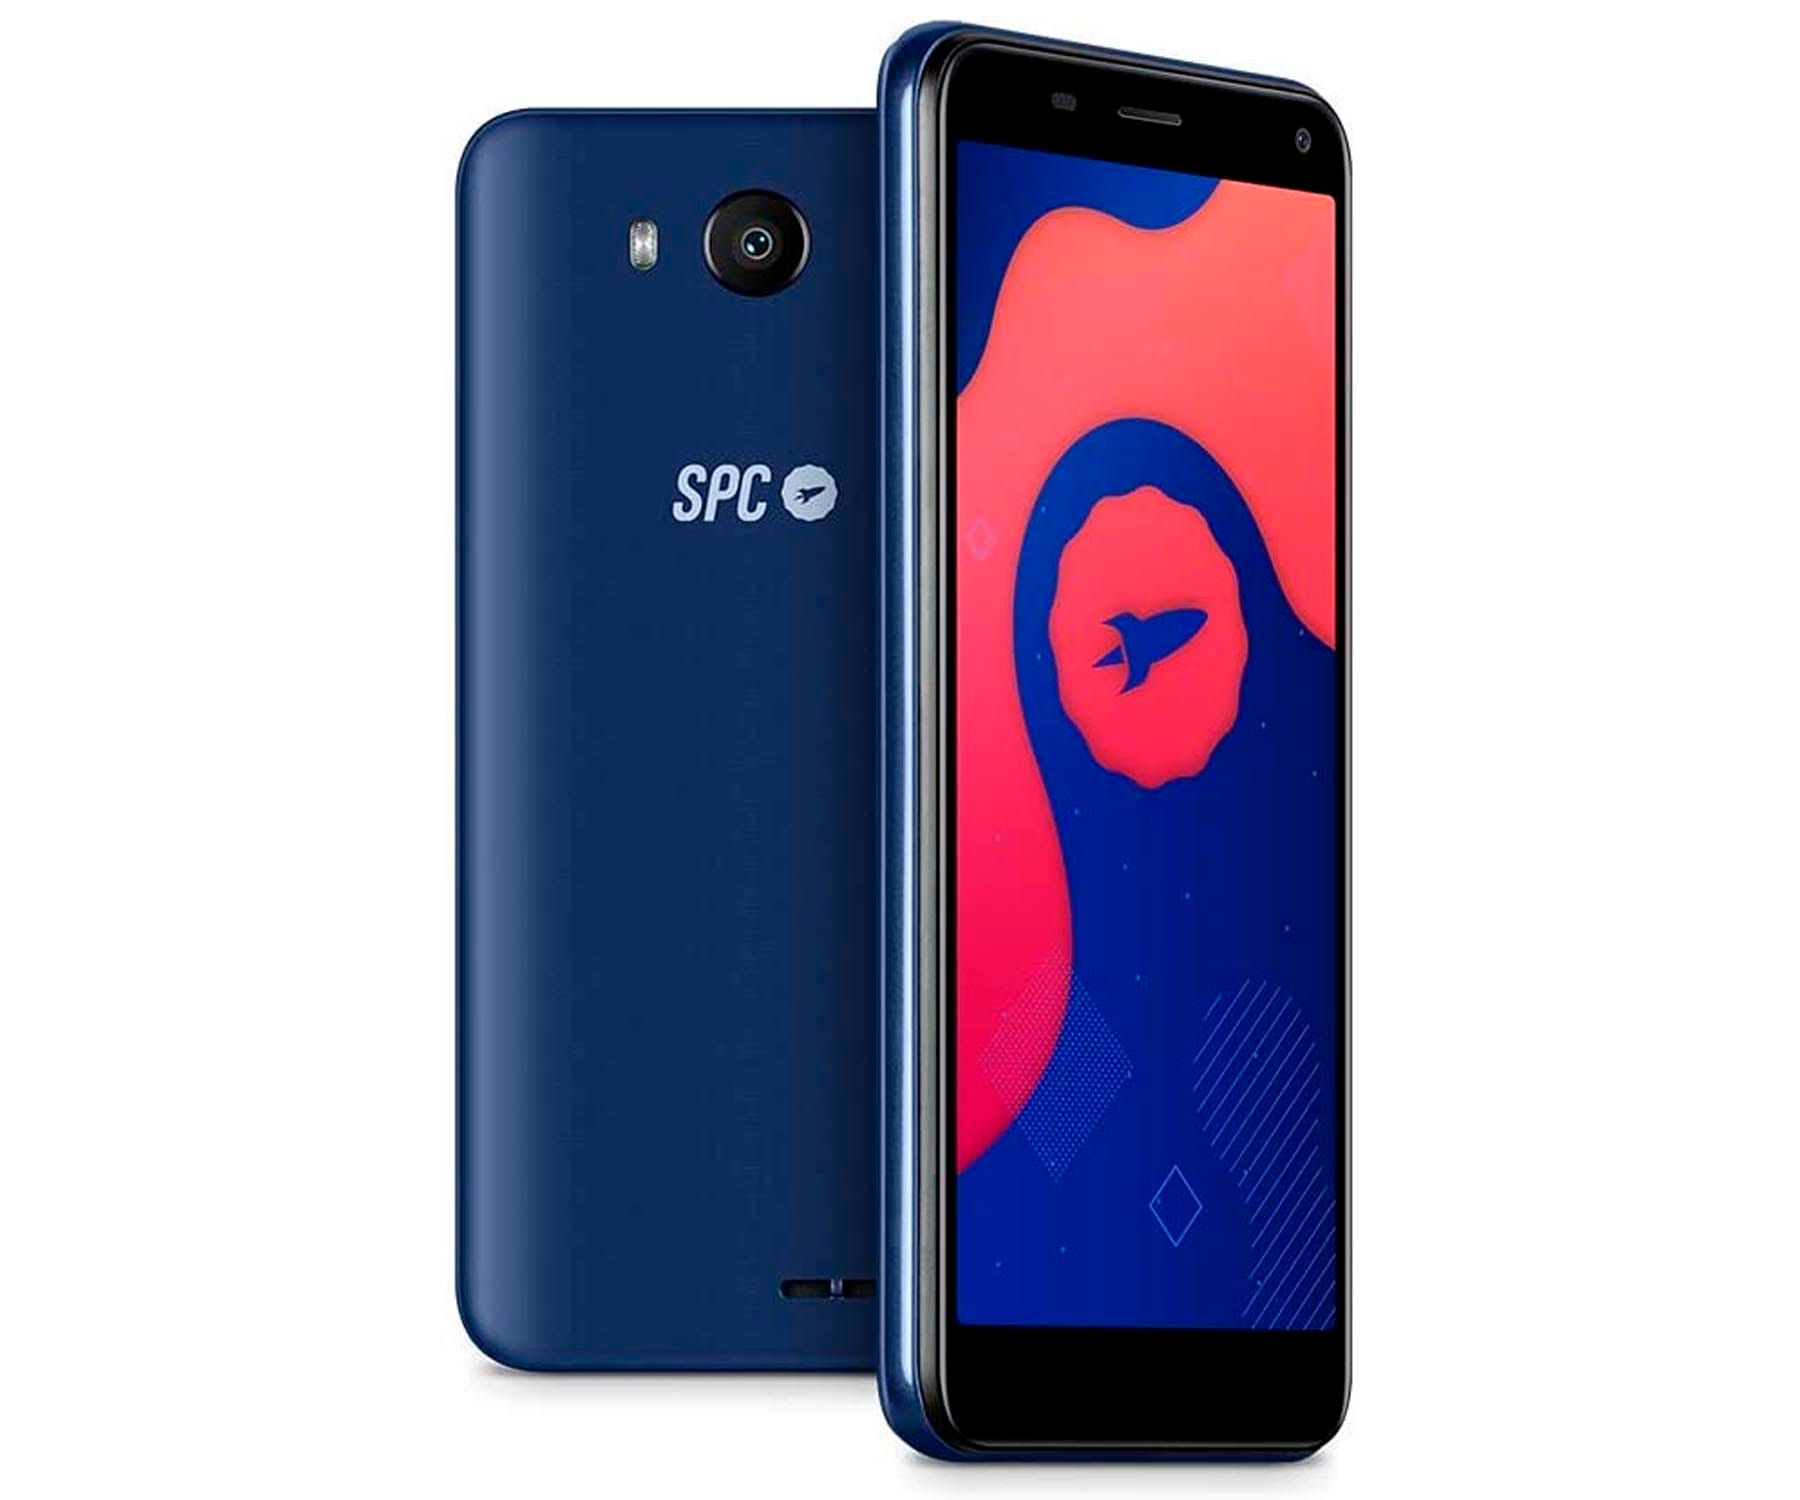 SPC SMART LITE AZUL MÓVIL 3G DUAL SIM 5'' FWVGA QUADCORE 16GB 1GB RAM CAM 5MP SELFIES 2MP